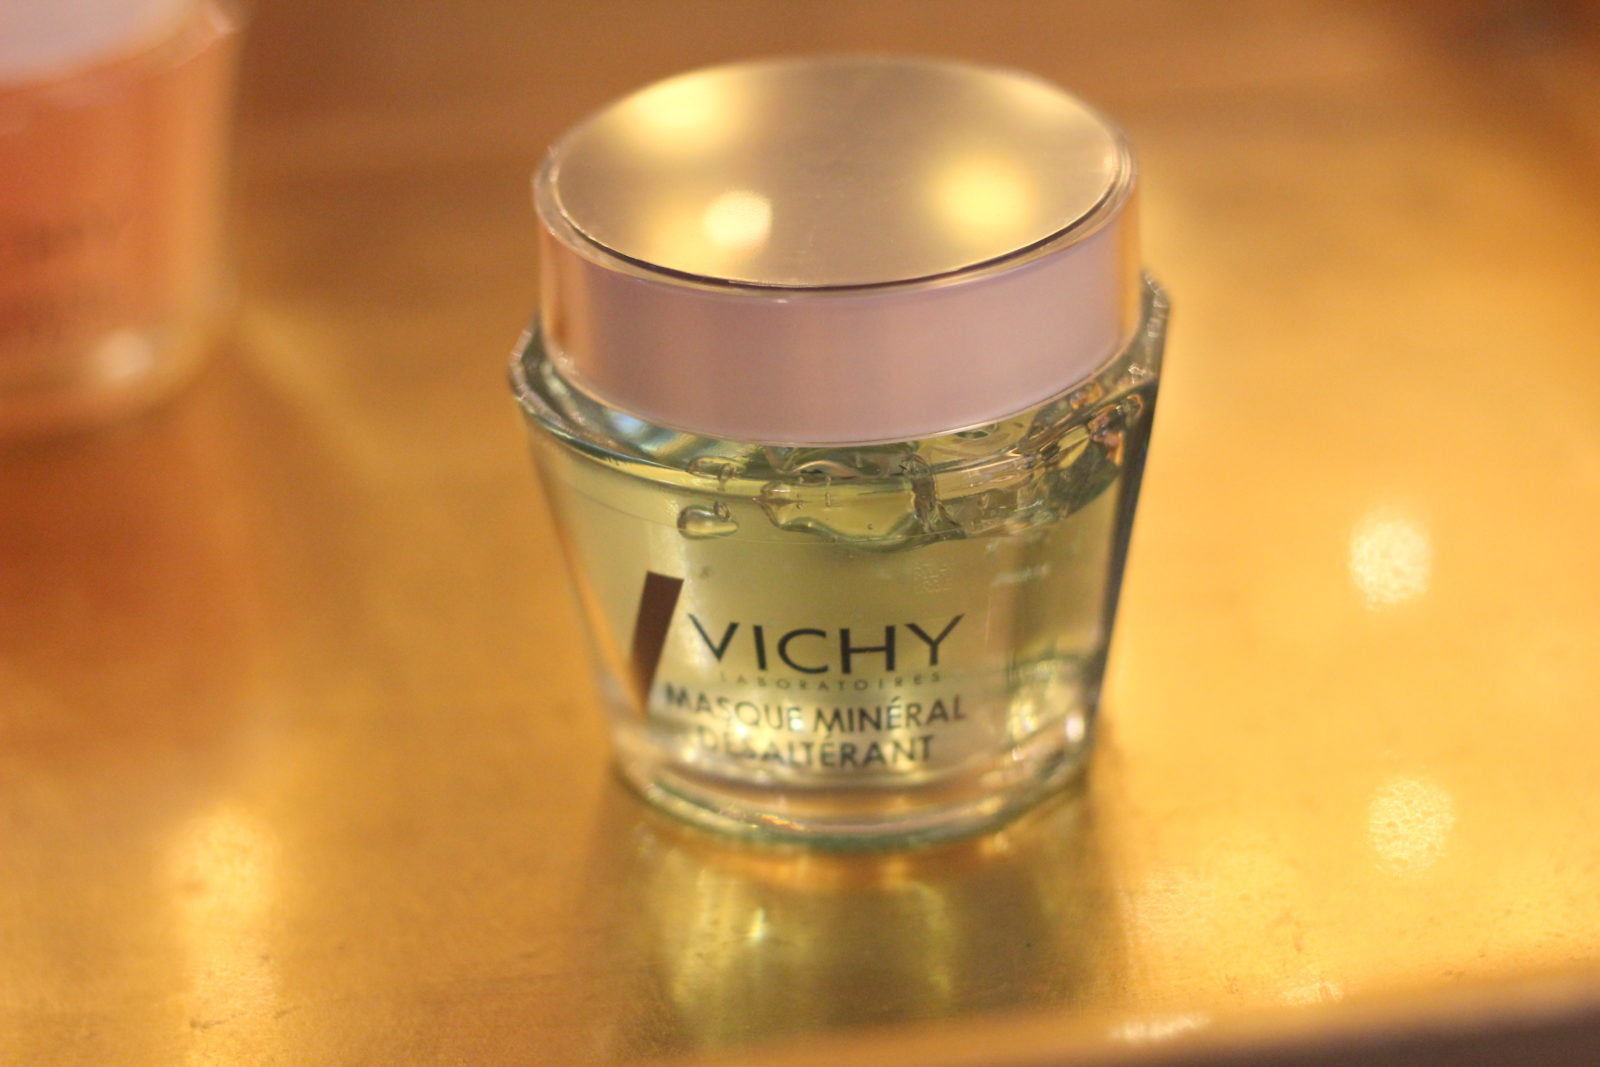 Vichy Mineral Masque